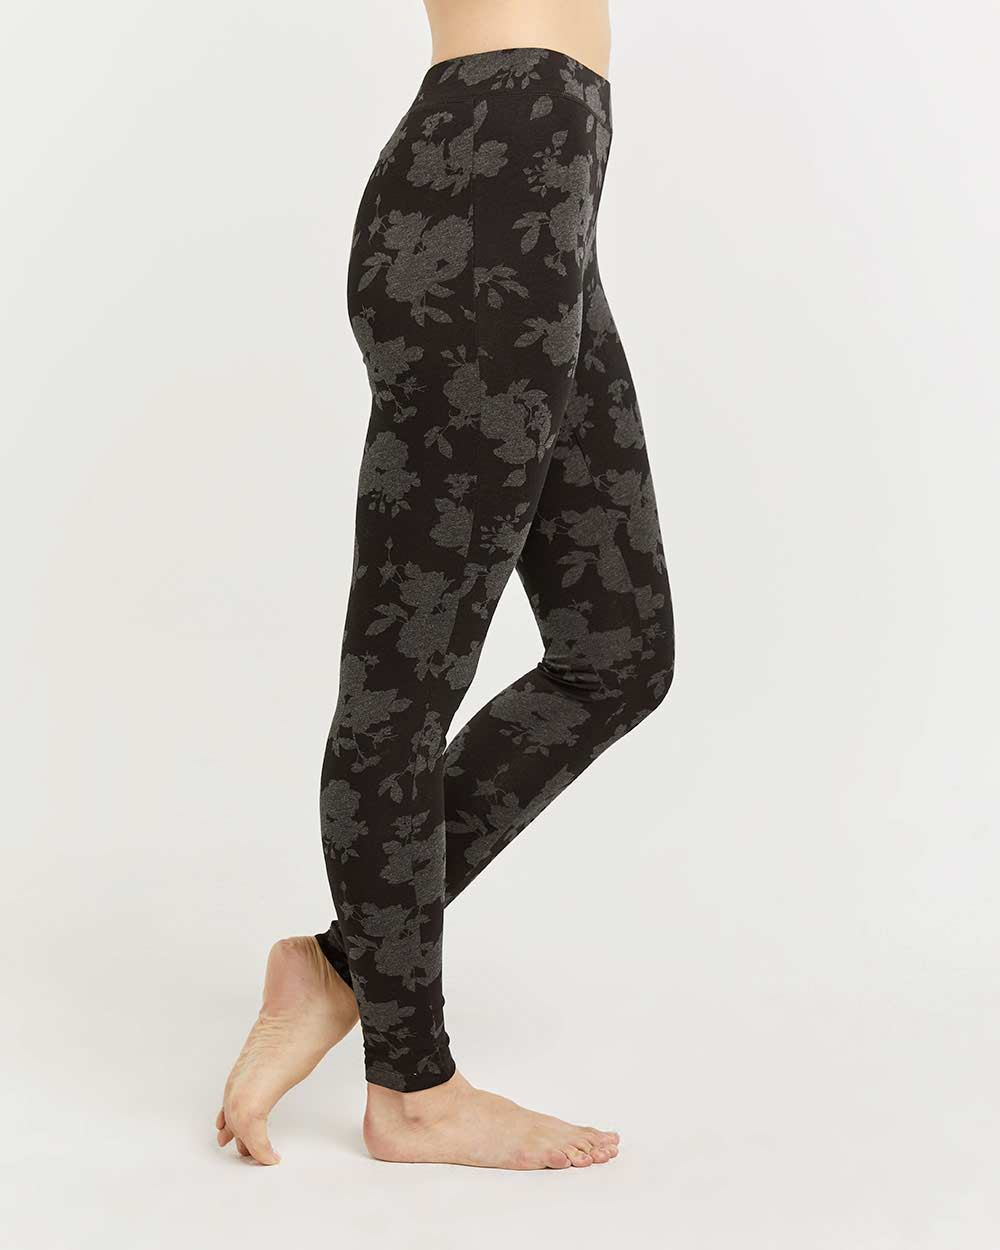 Cotton-Blend Floral Printed Leggings